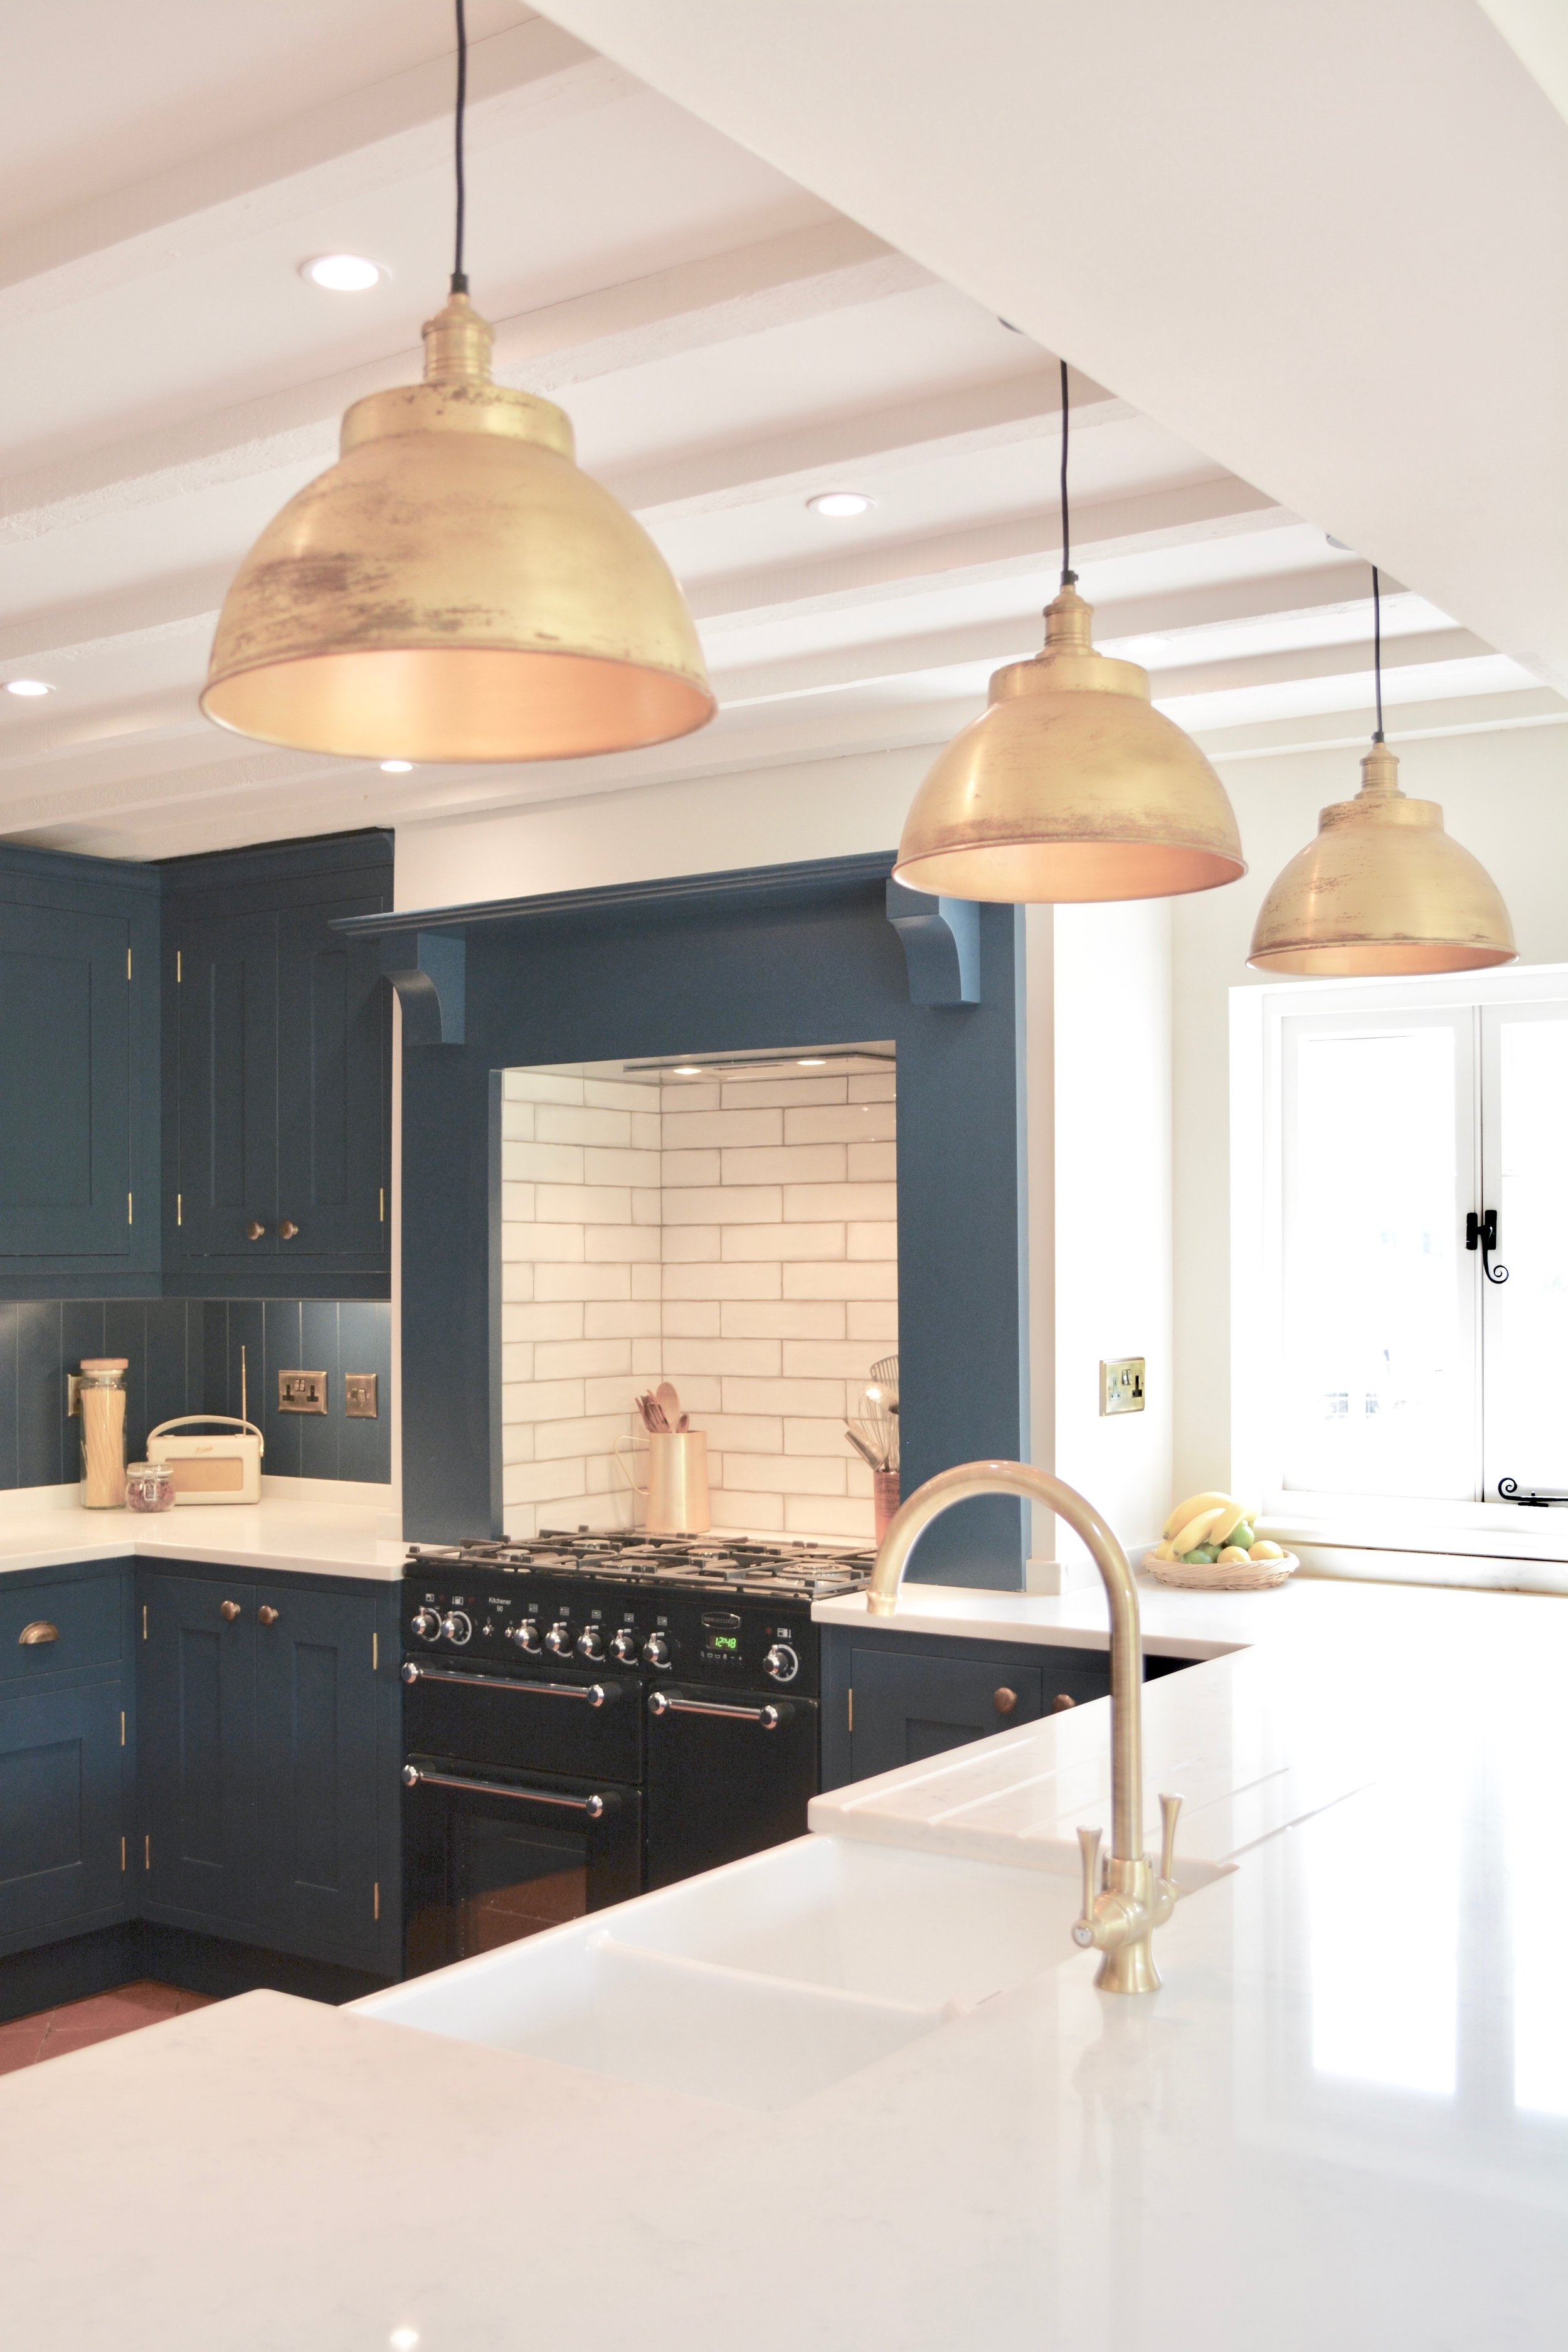 Herefordshire Farmhosue Project - Designed by Hannah Llewelyn Interior Design - hlinteriors.co.uk2.jpg